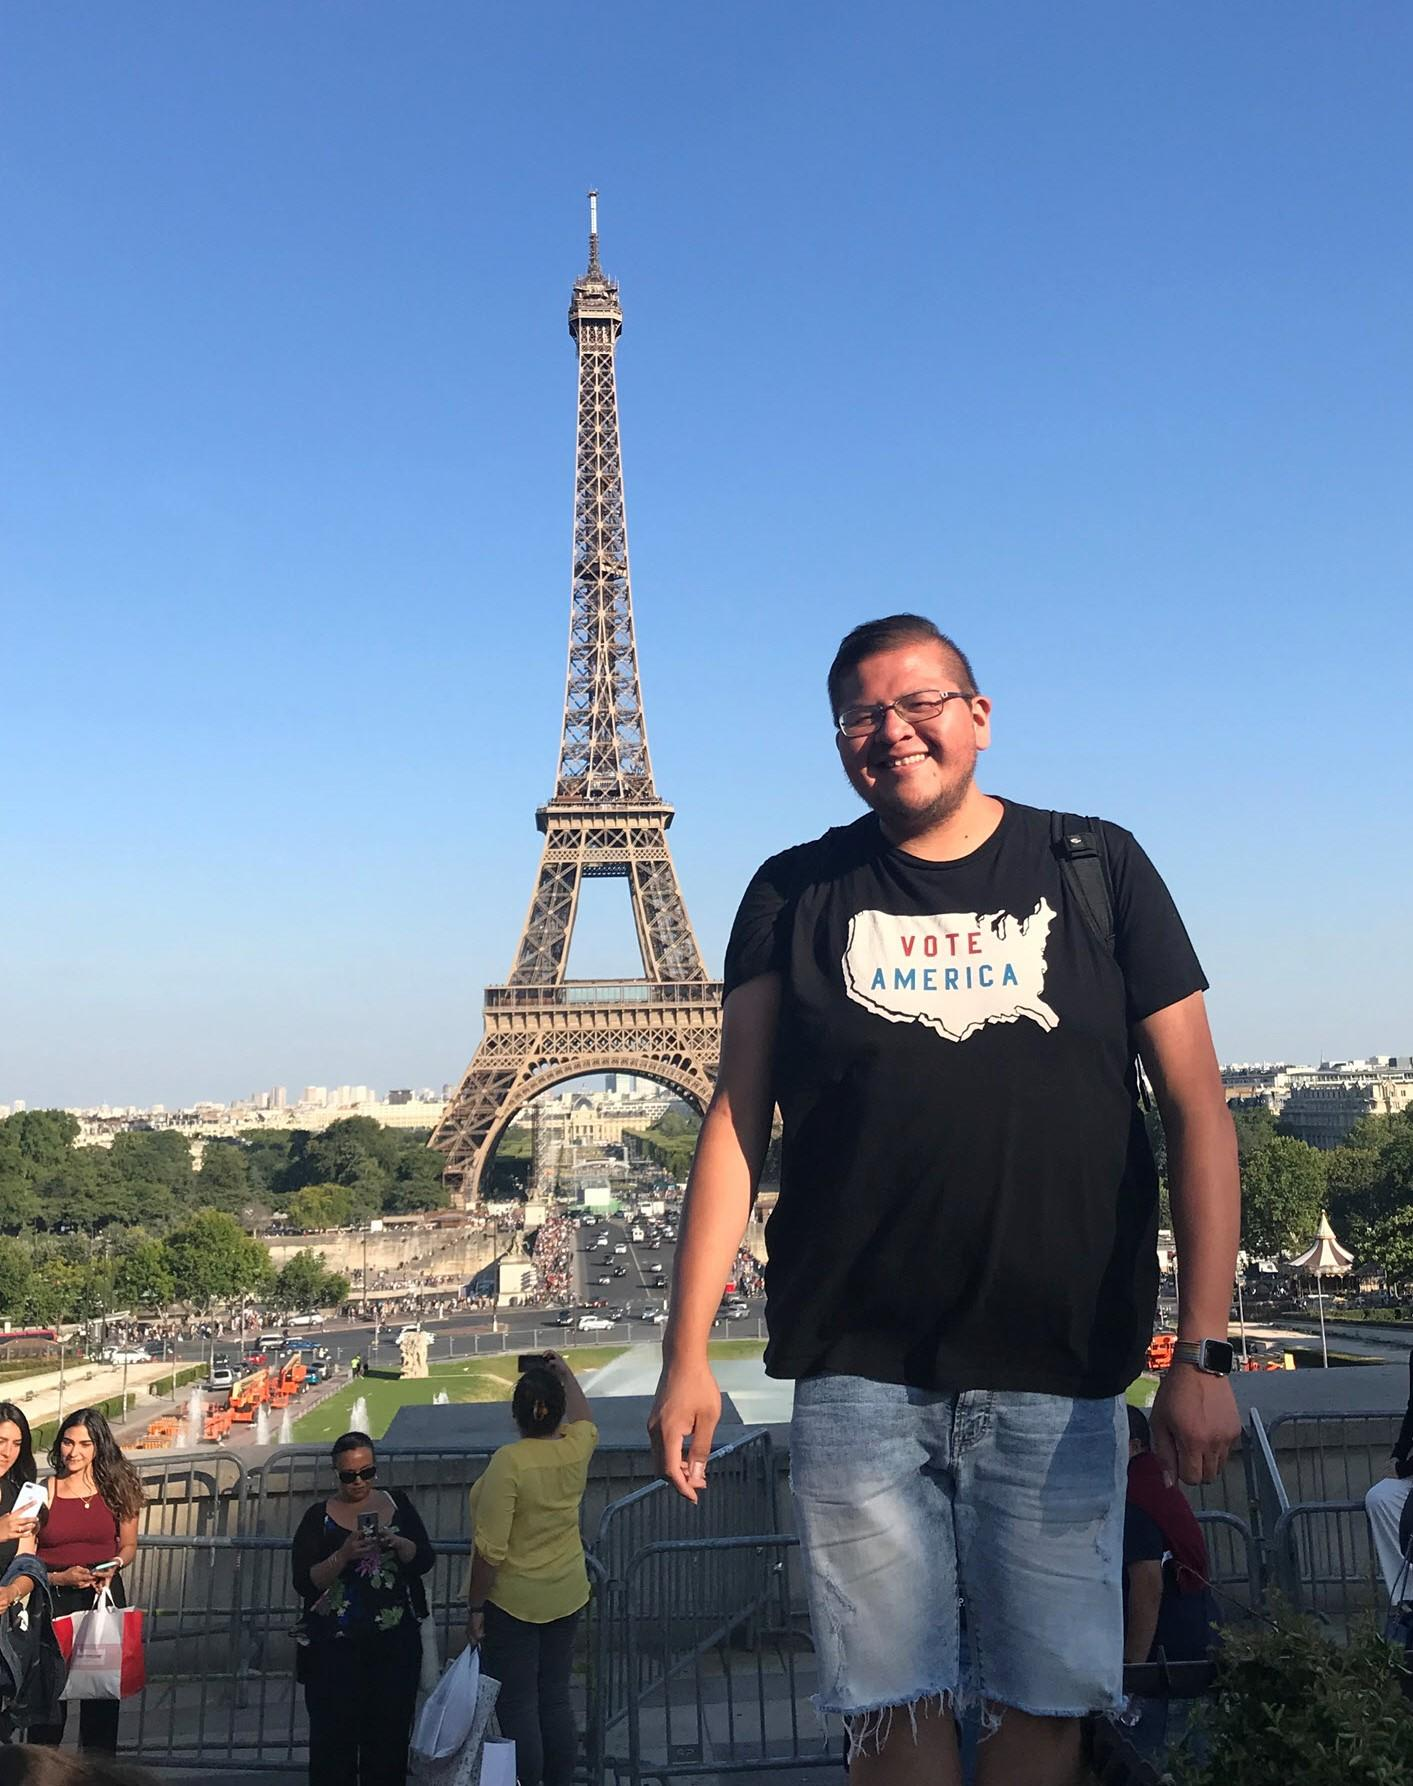 Courtesy photo of Michael Begay, who is standing in front of the Eiffel Tower in Paris.